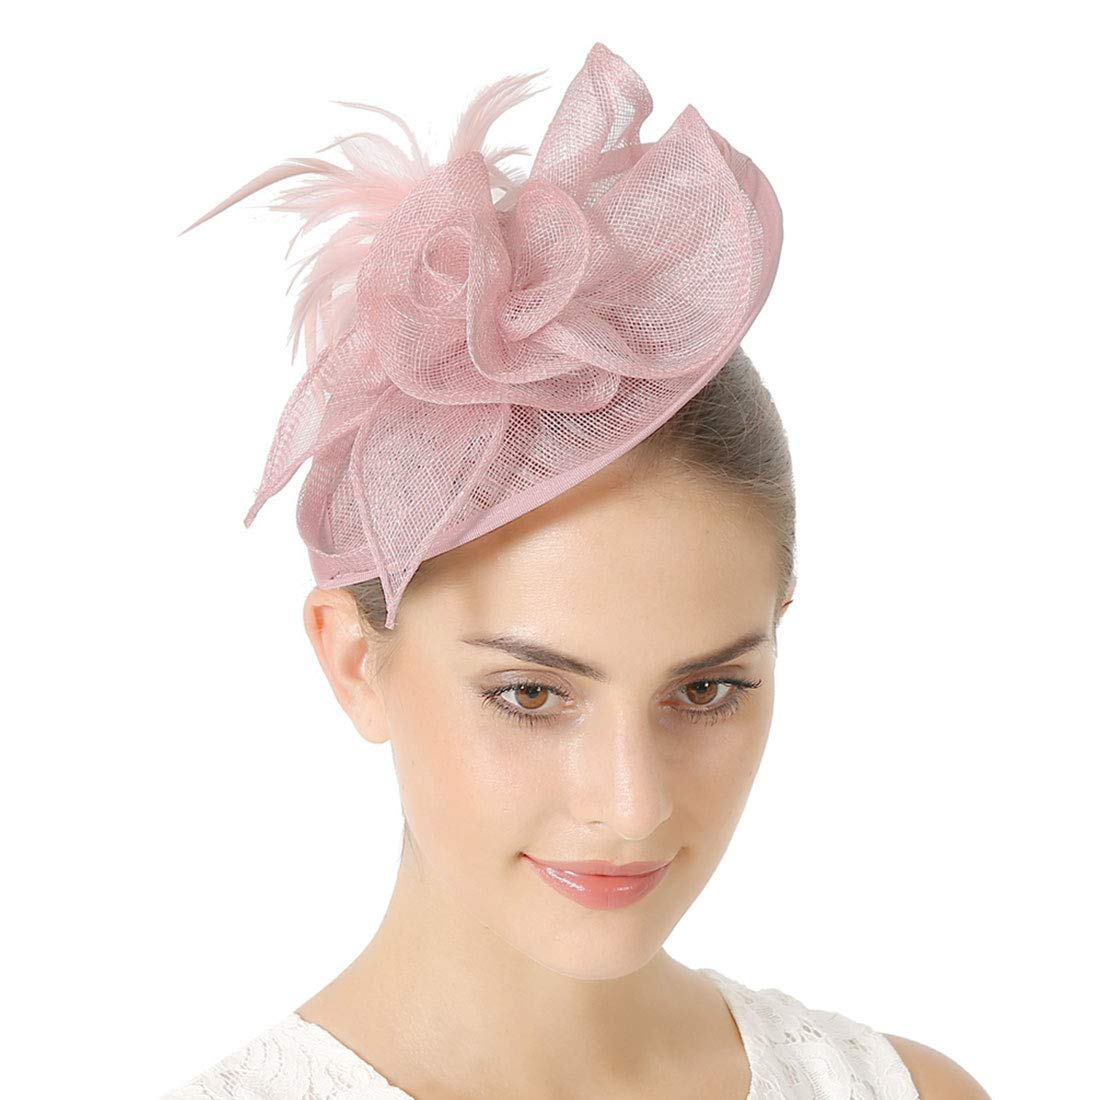 Sinamay Vintage Women Fascinators Derby Hat Feather with Headband Cocktail Headpiece for Tea Party Wedding (One Size, Pink)